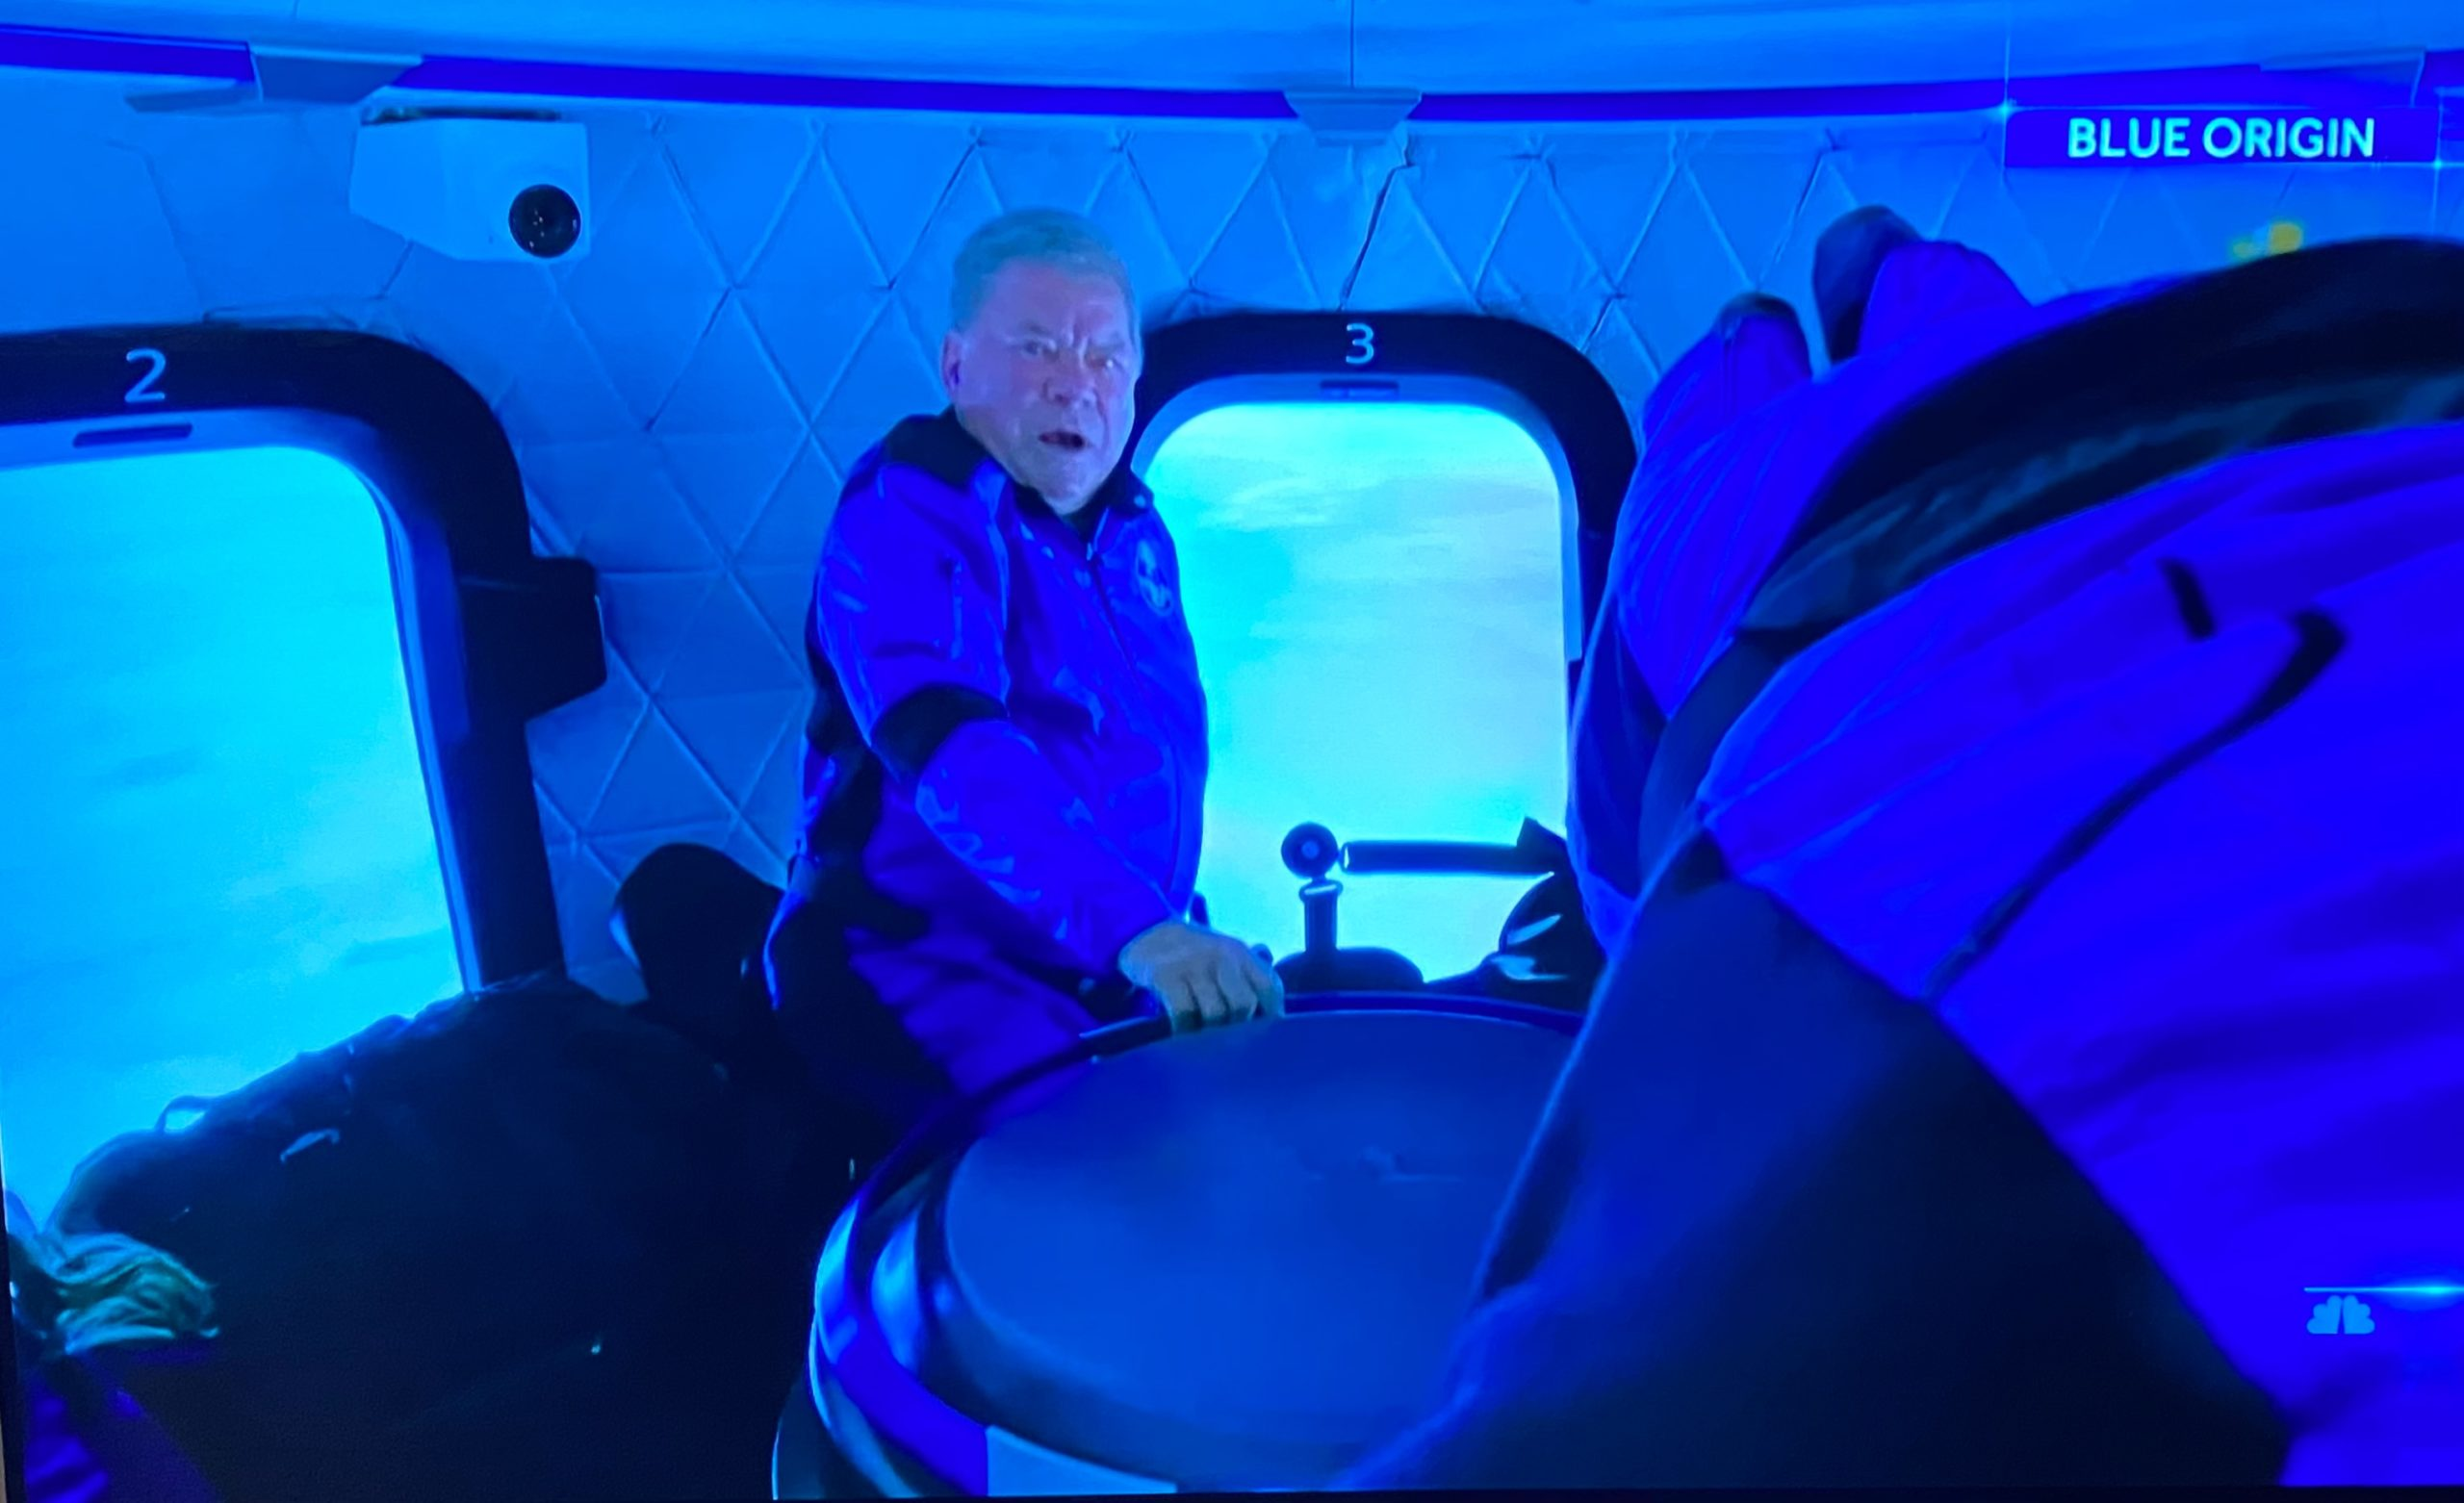 Star Trek's William Shatner Rides Emotional Journey to Final Frontier as Oldest Human and Profoundly Changed